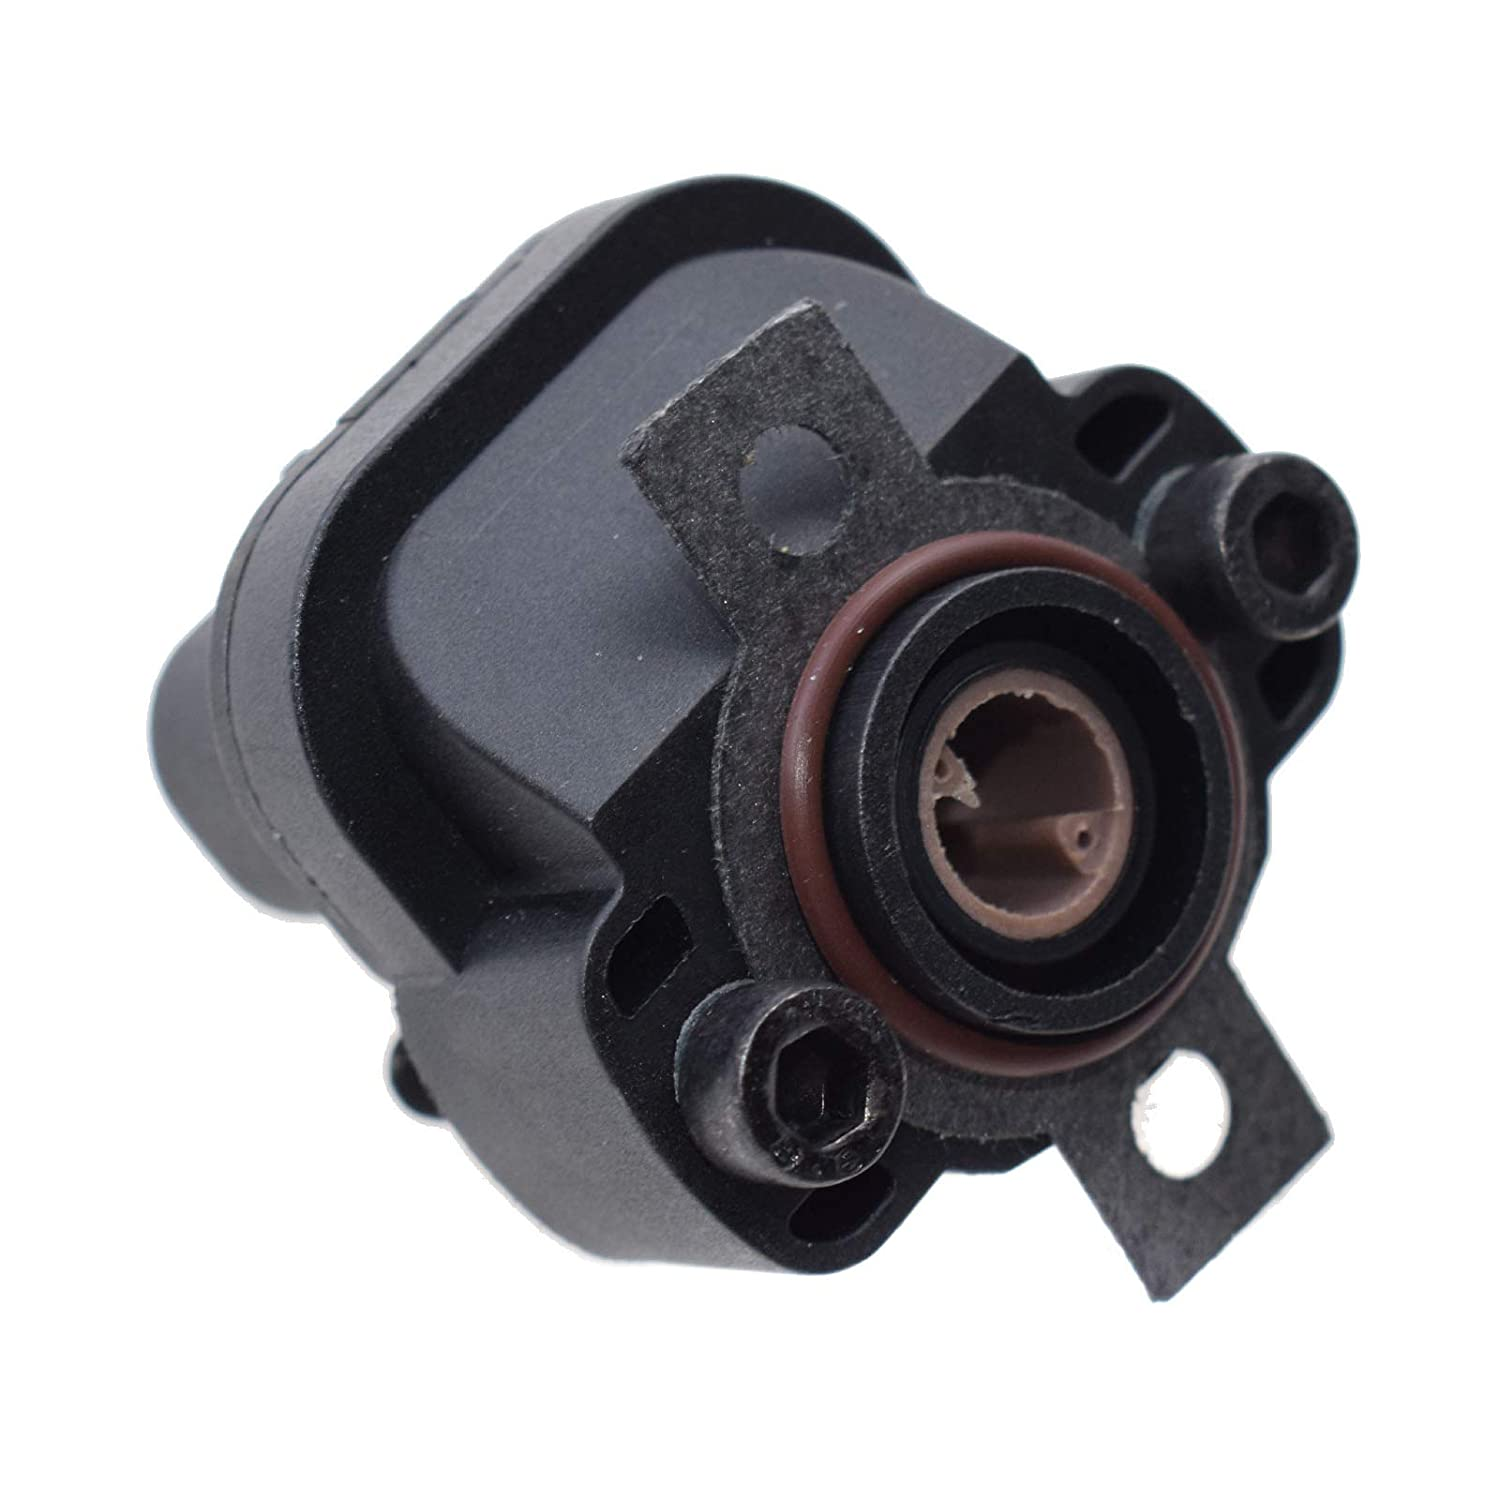 eGang/ Auto New Throttle Position Sensor TPS 4761871 For Jeeps Cherokee Wrangler Dakota Ram 1500 Caravan Grand Cherokee Ramcharger Shadow 91 92 93 94 95 96 97